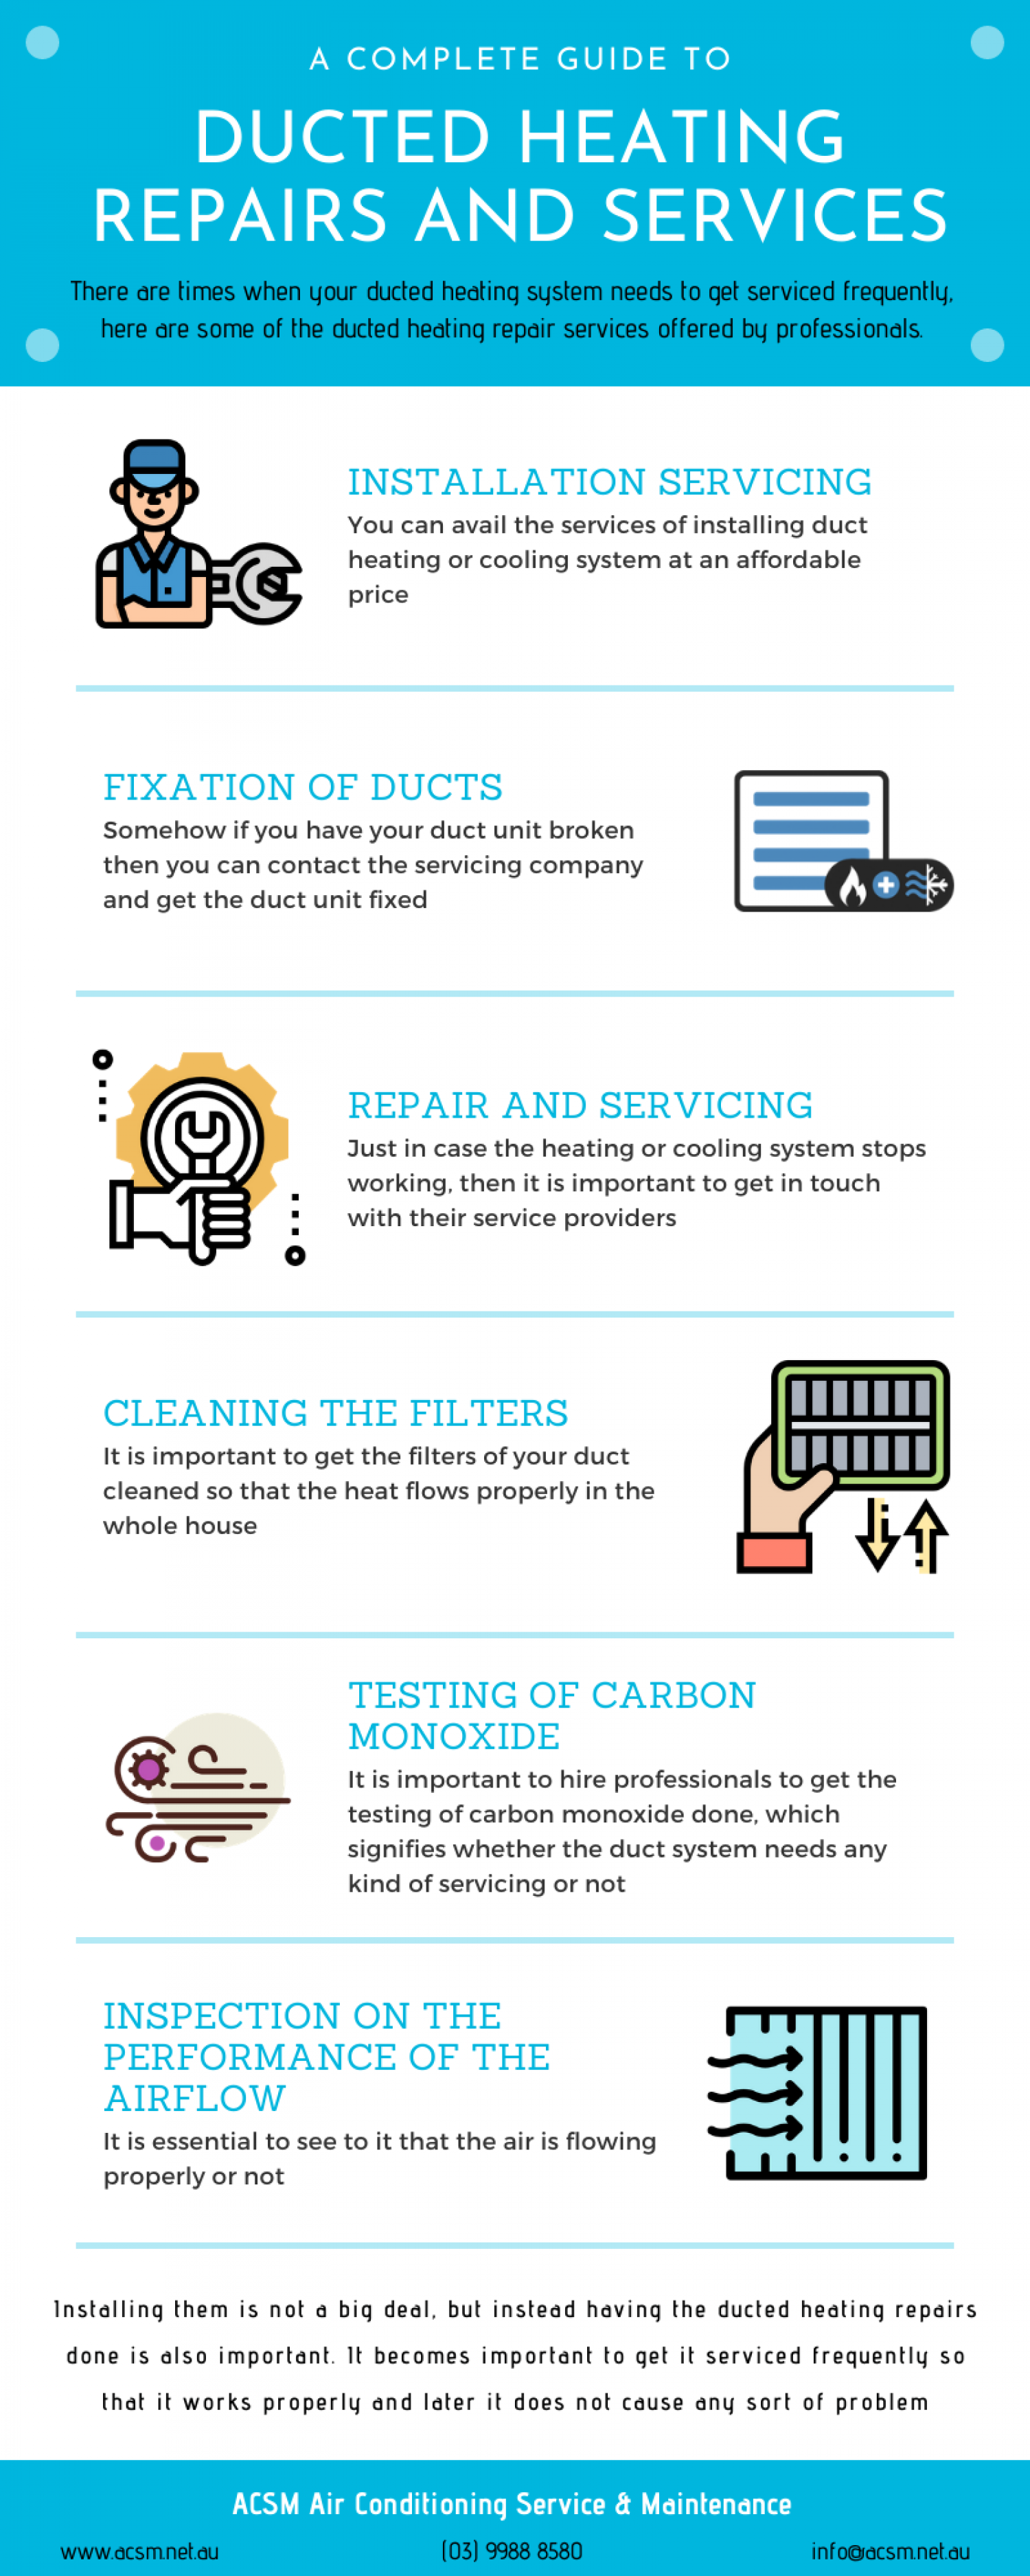 Ducted Heating - Repairs and Services Infographic